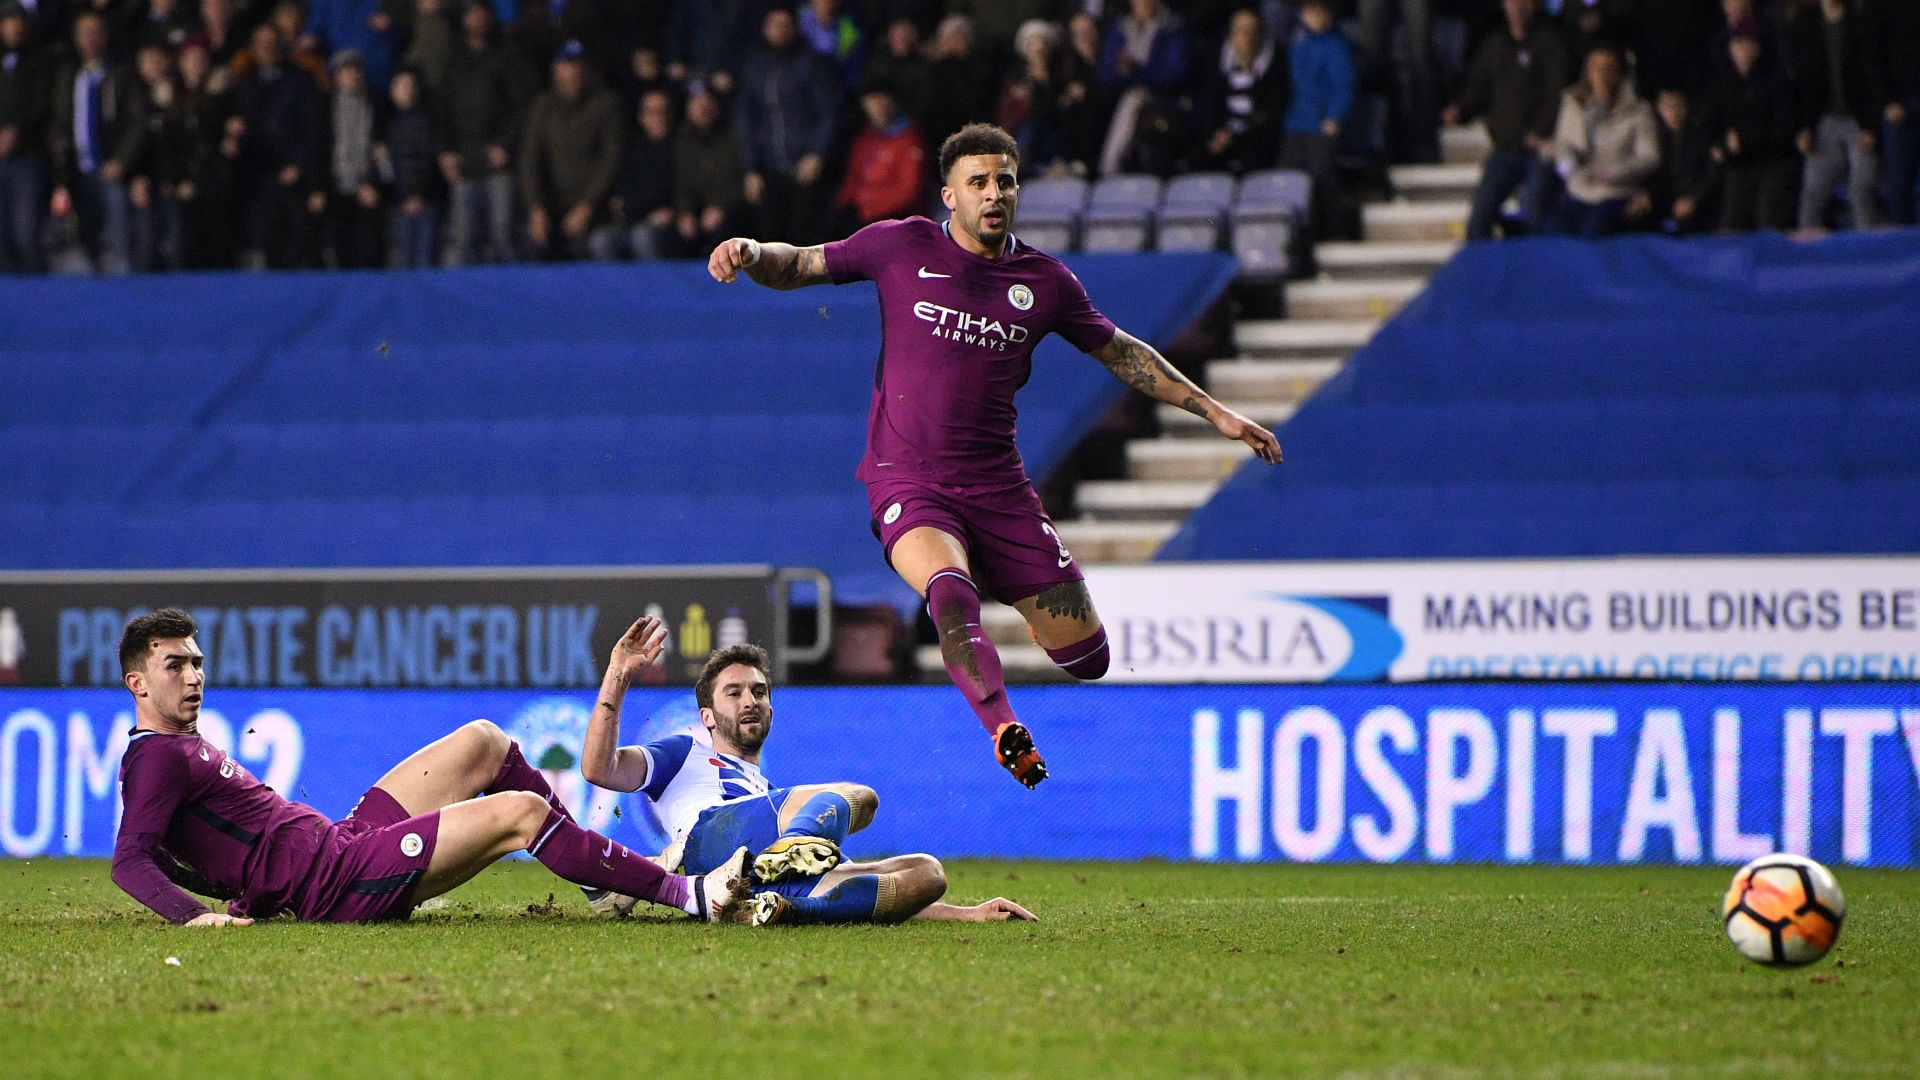 FA Cup (2017-2018) Report: Wigan Athletic 1 Manchester City 0 - Grigg ends Guardiola's quadruple dream